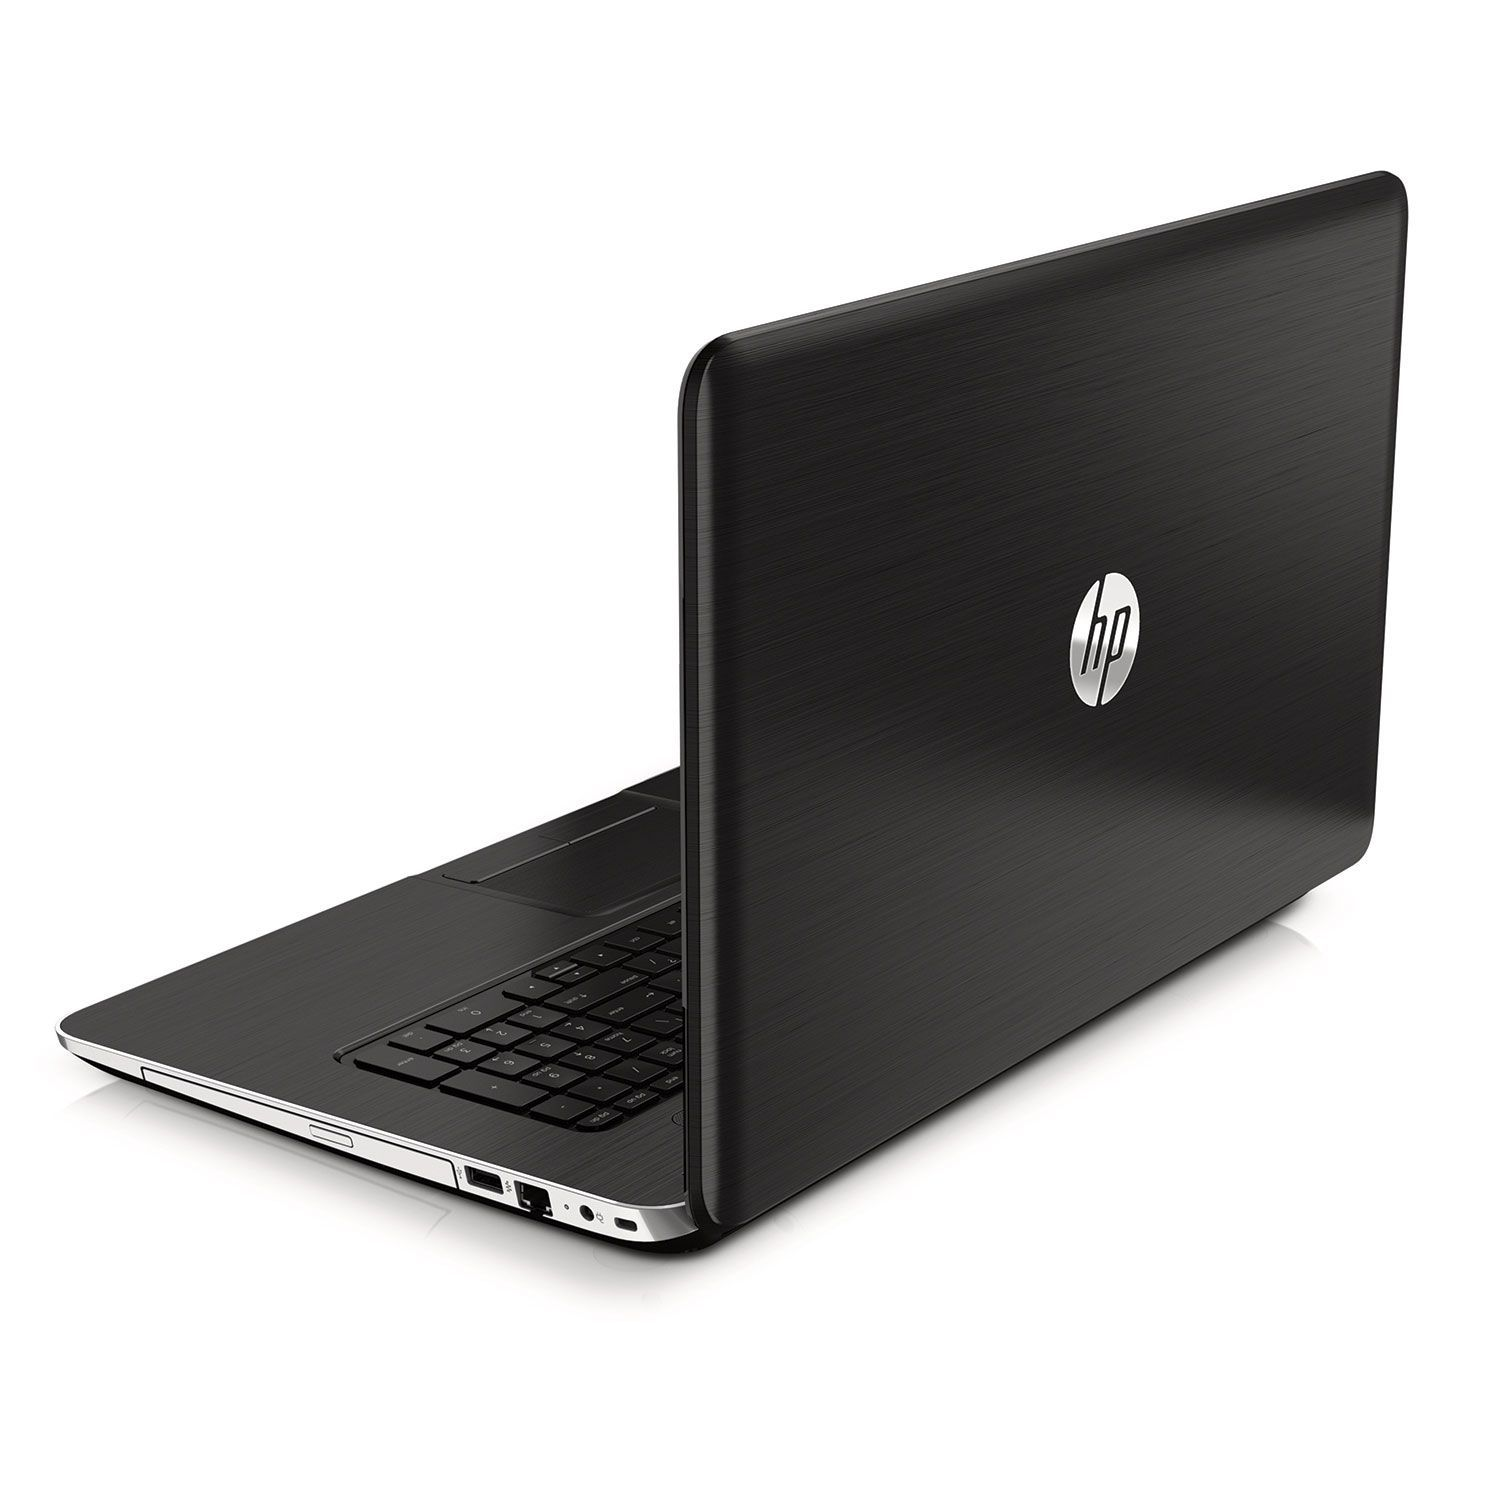 hp pavilion 17 f037cl 17 3 laptop computer amd a8 6410 6gb memory 750gb hard pc laptops. Black Bedroom Furniture Sets. Home Design Ideas